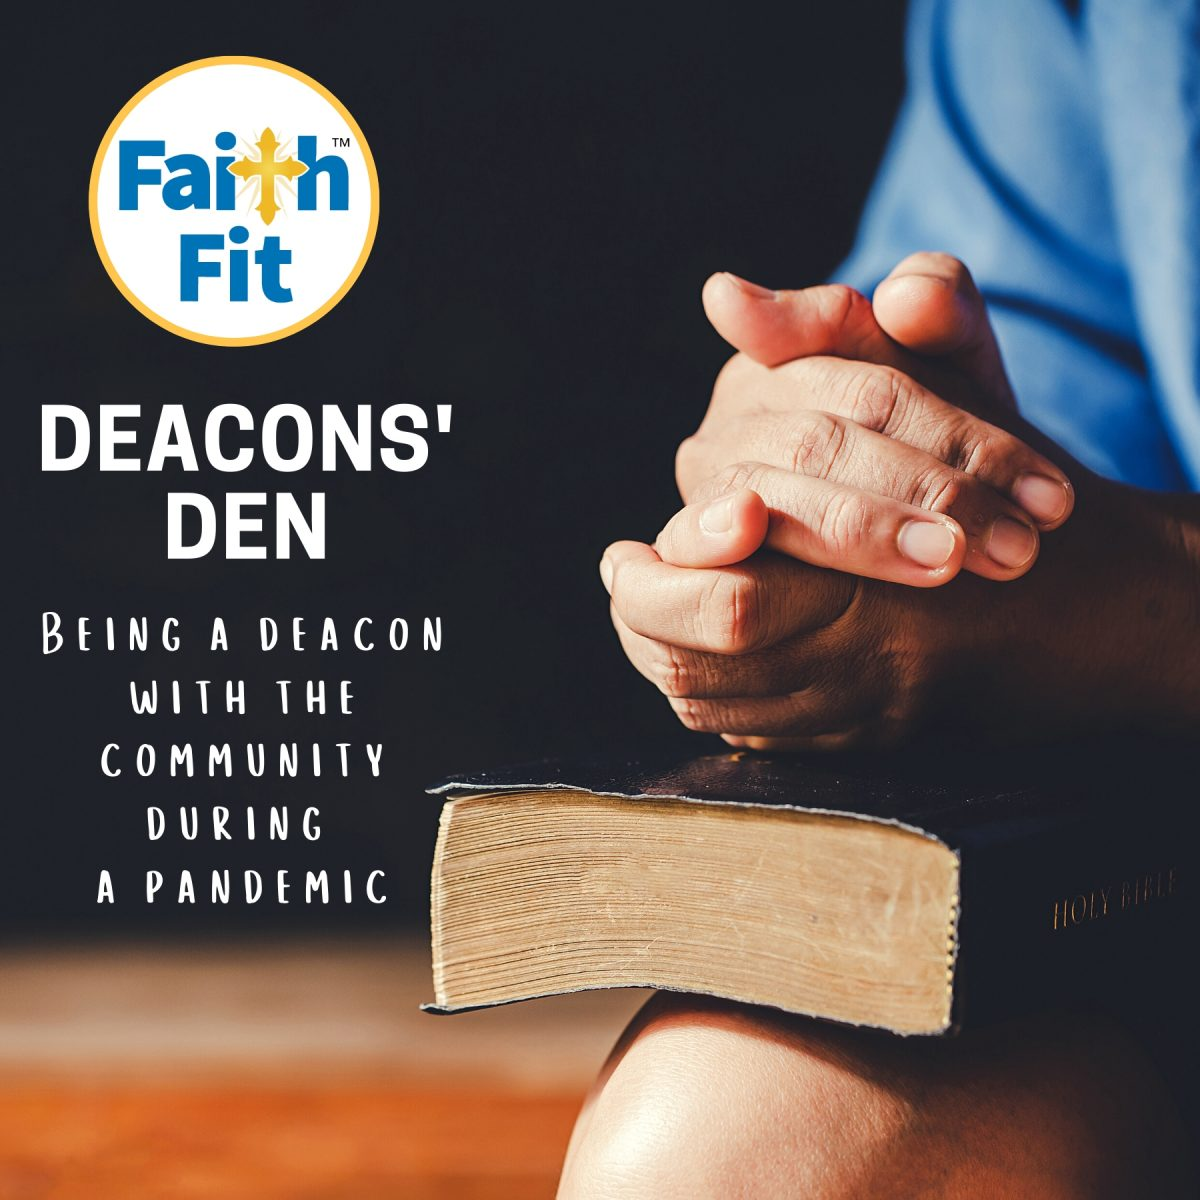 #5: Being a Deacon with the Community During a Pandemic